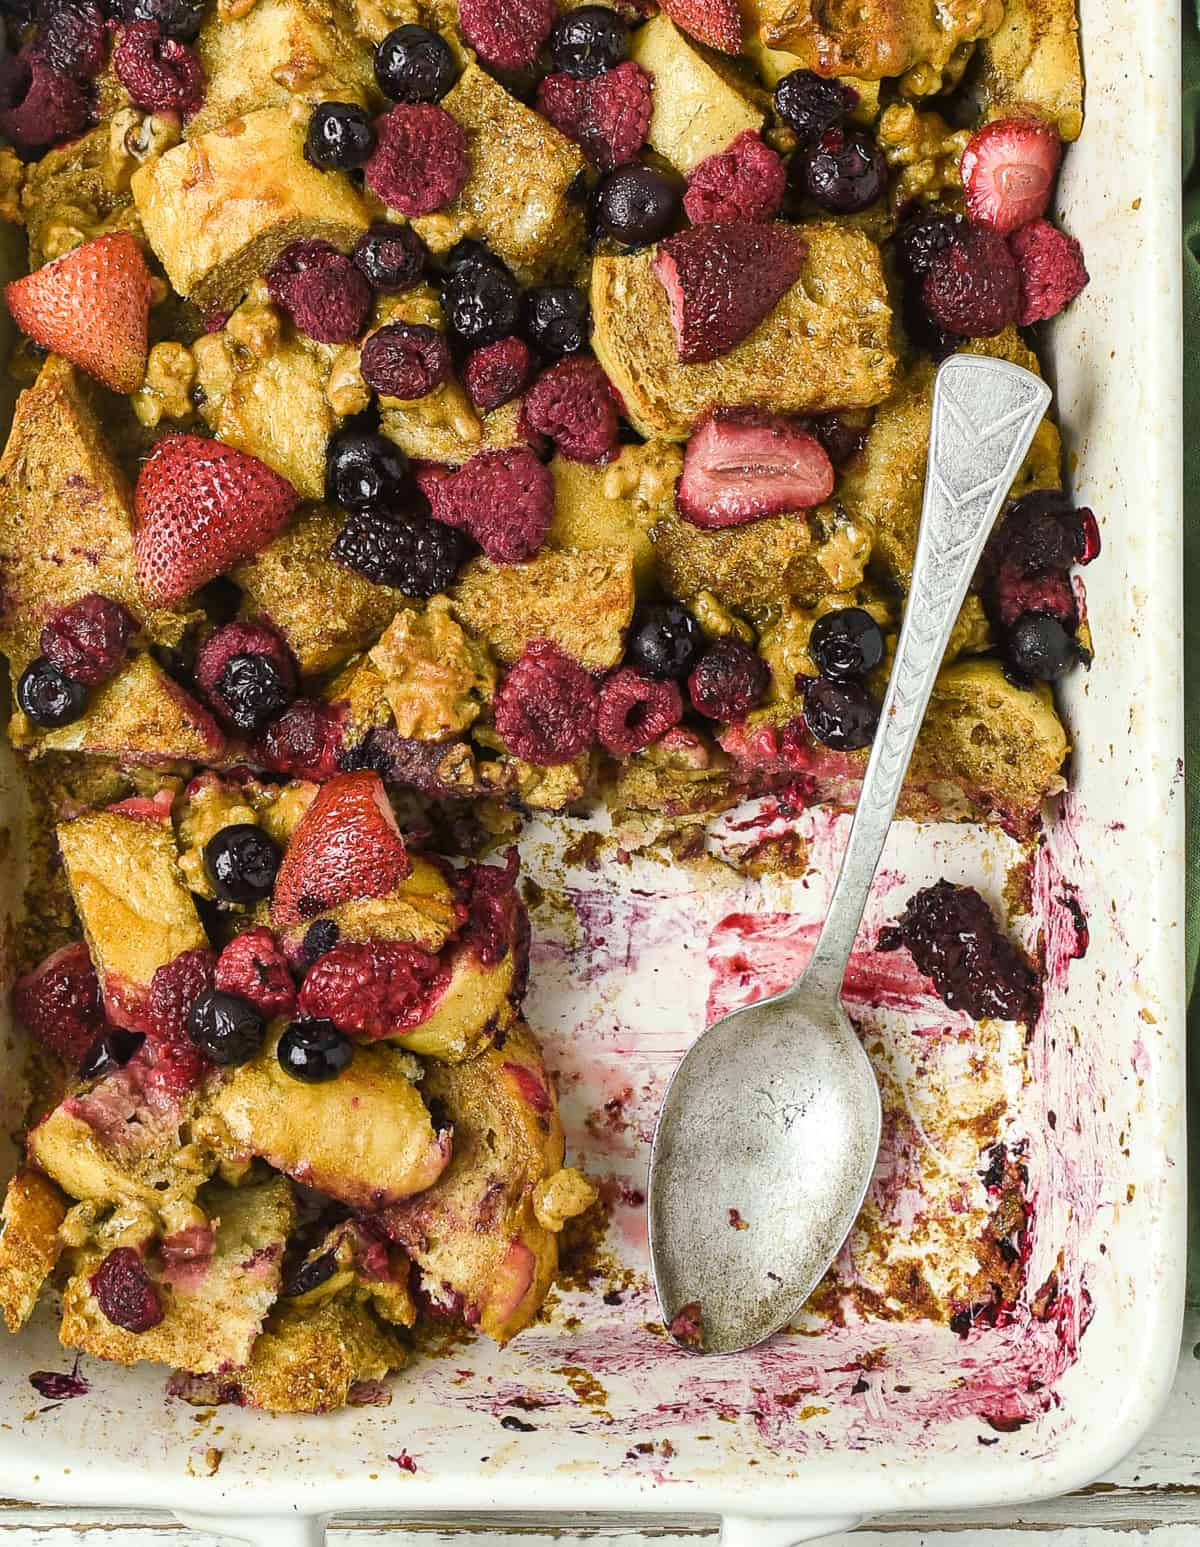 Spoon in baking dish with vegan french toast casserole.